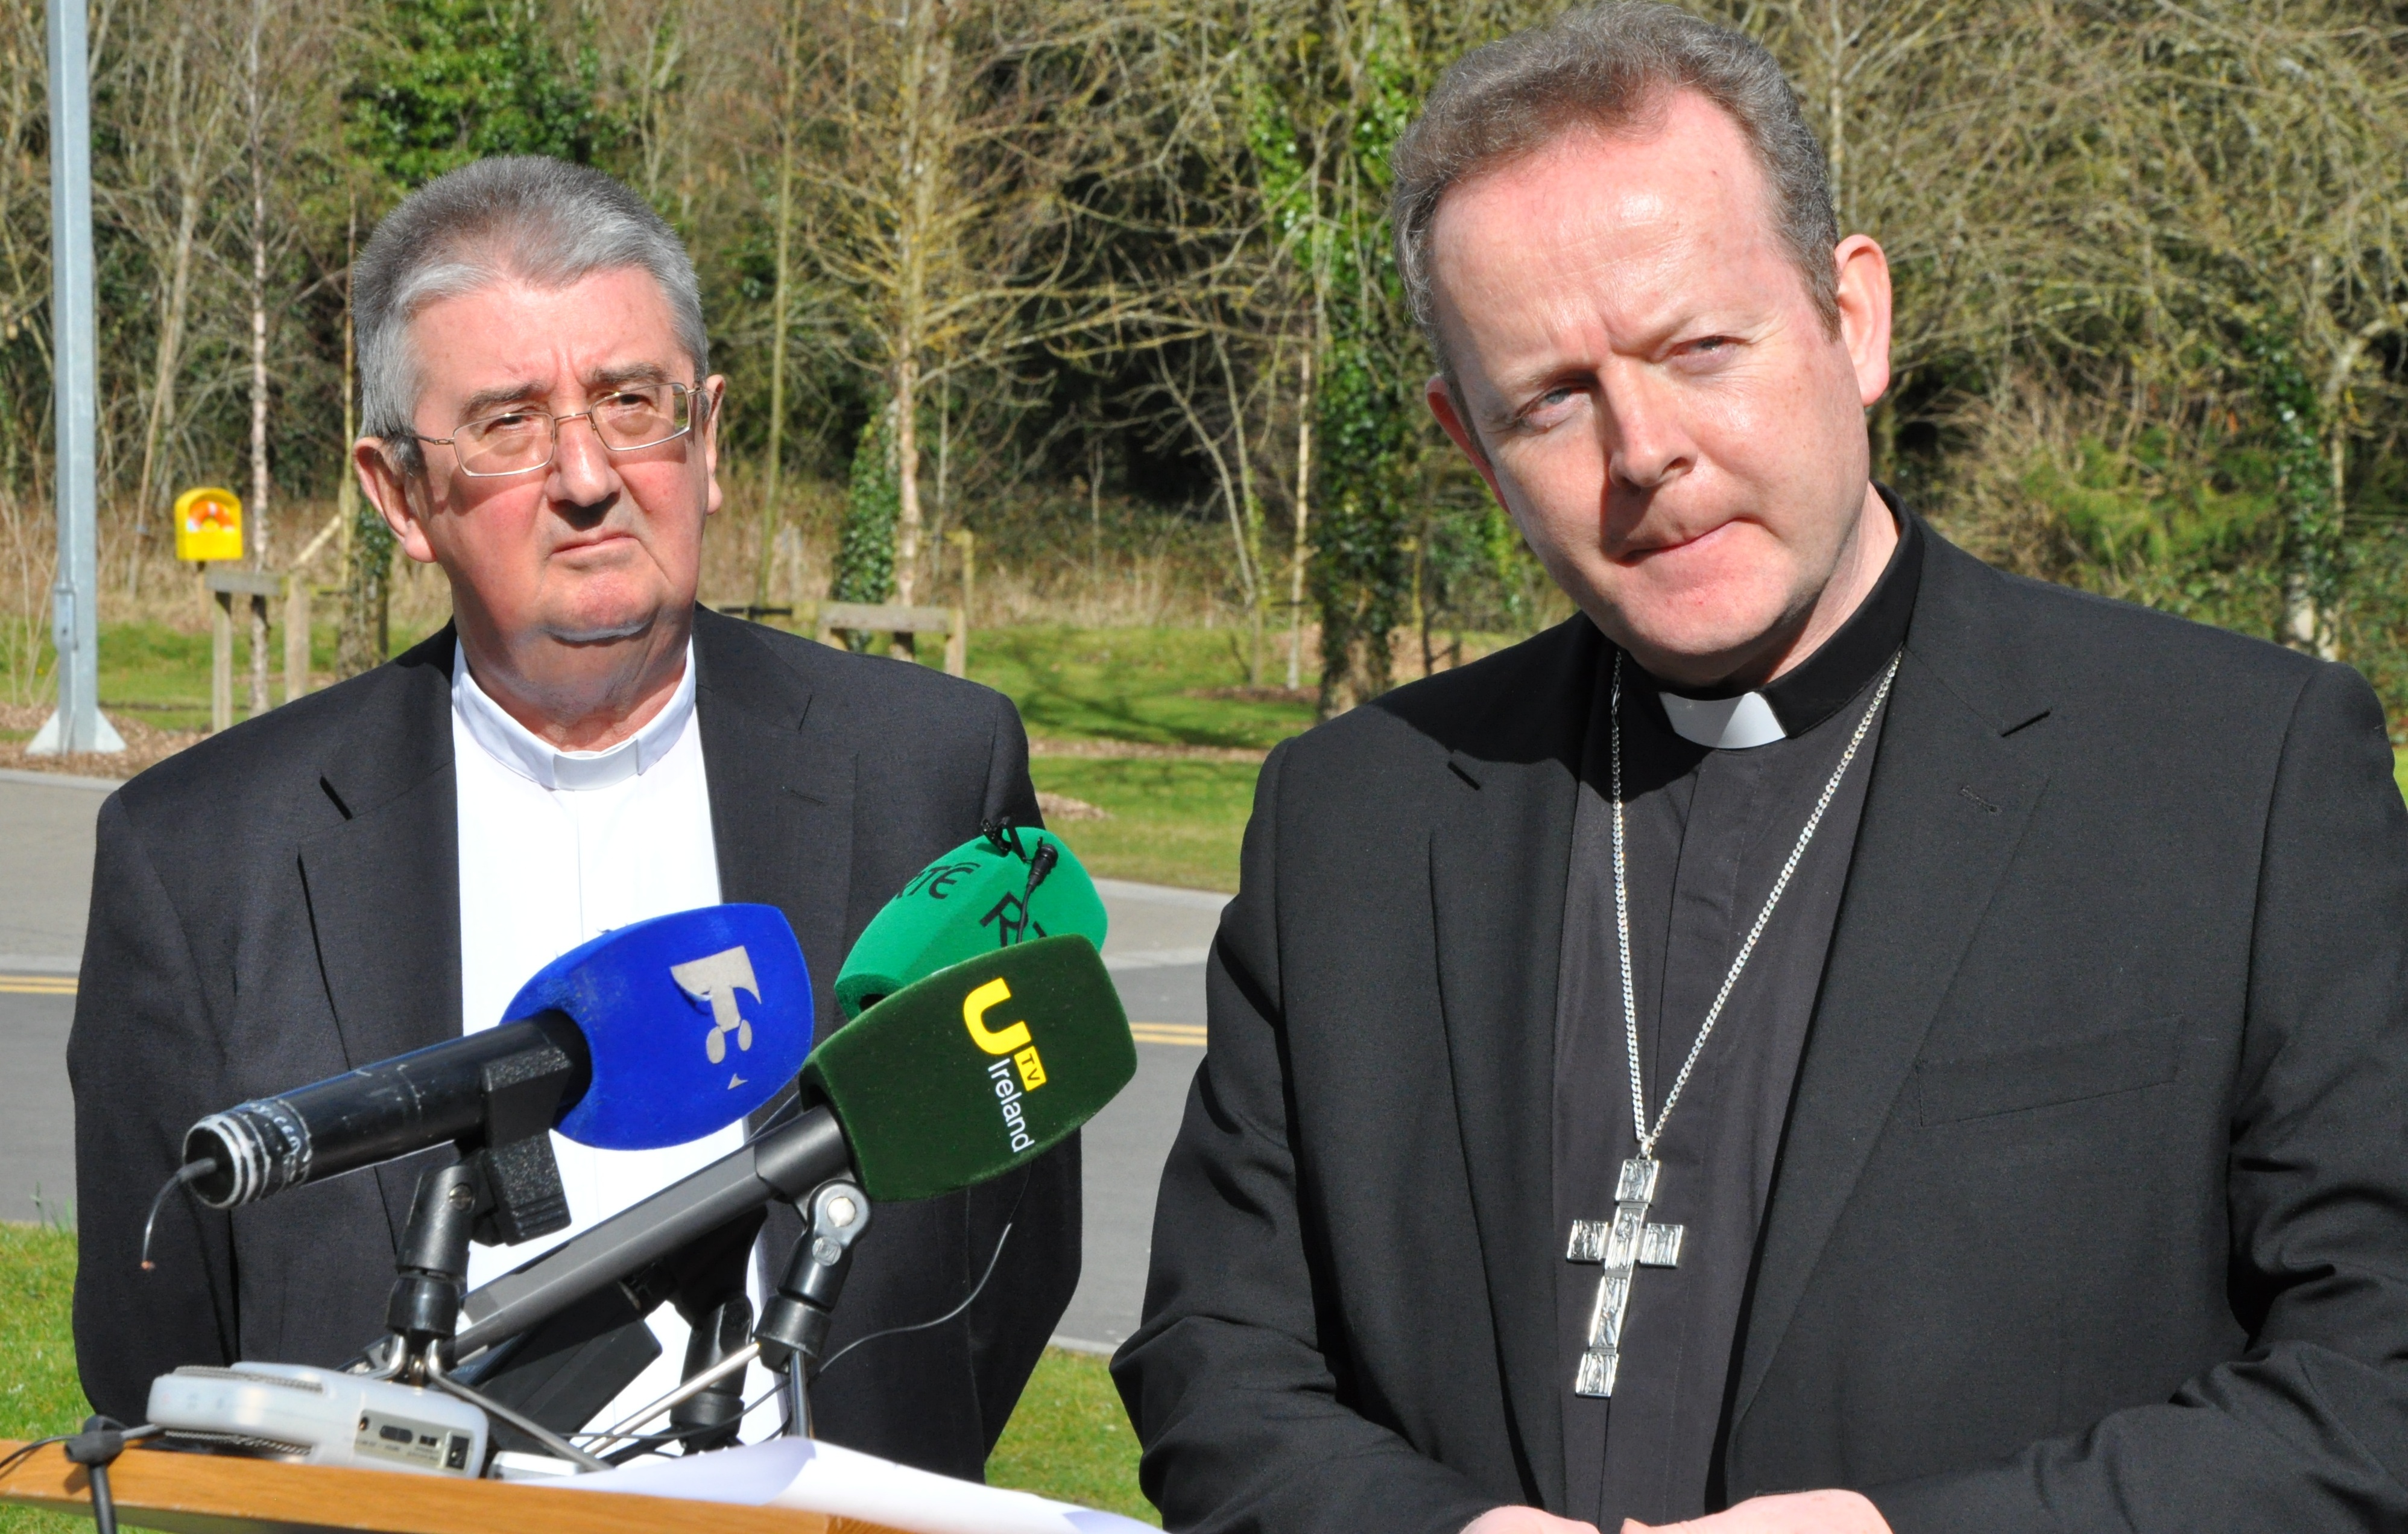 Archbishop Diarmuid Martin and Archbishop Eamon Martin MAYNOOTH 10 March 2015 Launch of Marriage is Important PIC BRENDA DRUMM